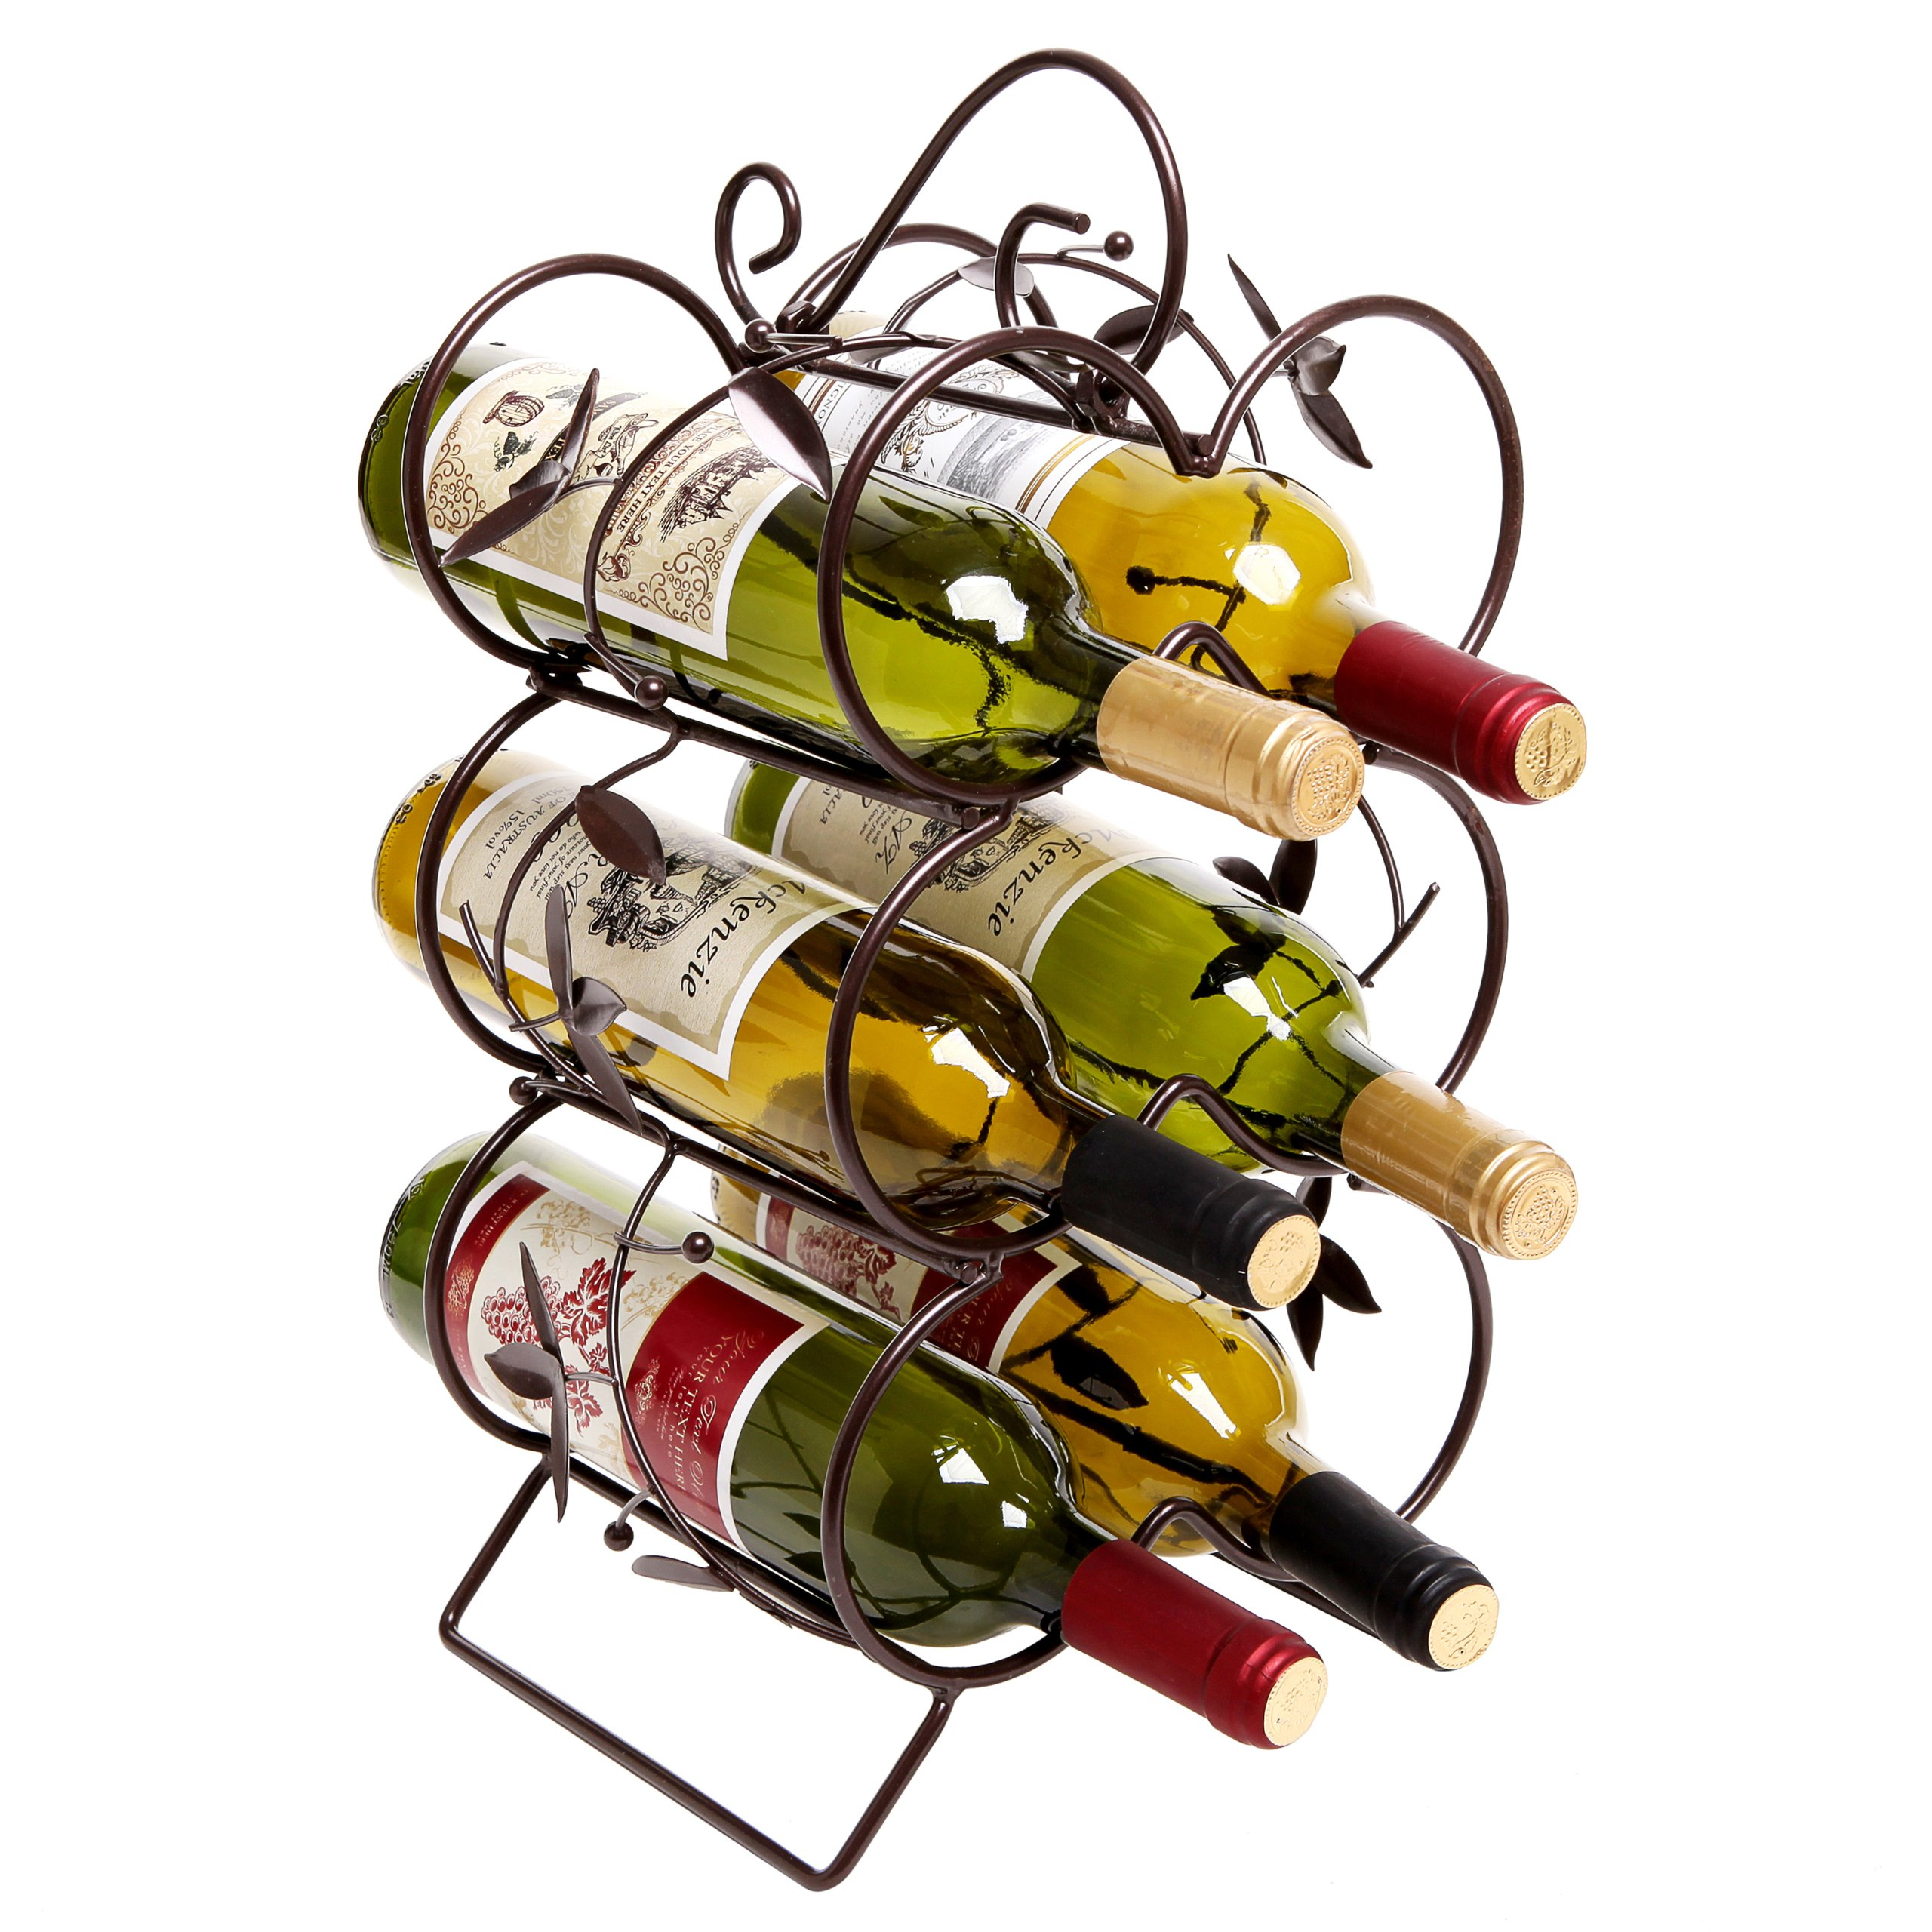 bisita guam your of image project design jk diy rack adams antler wine home for